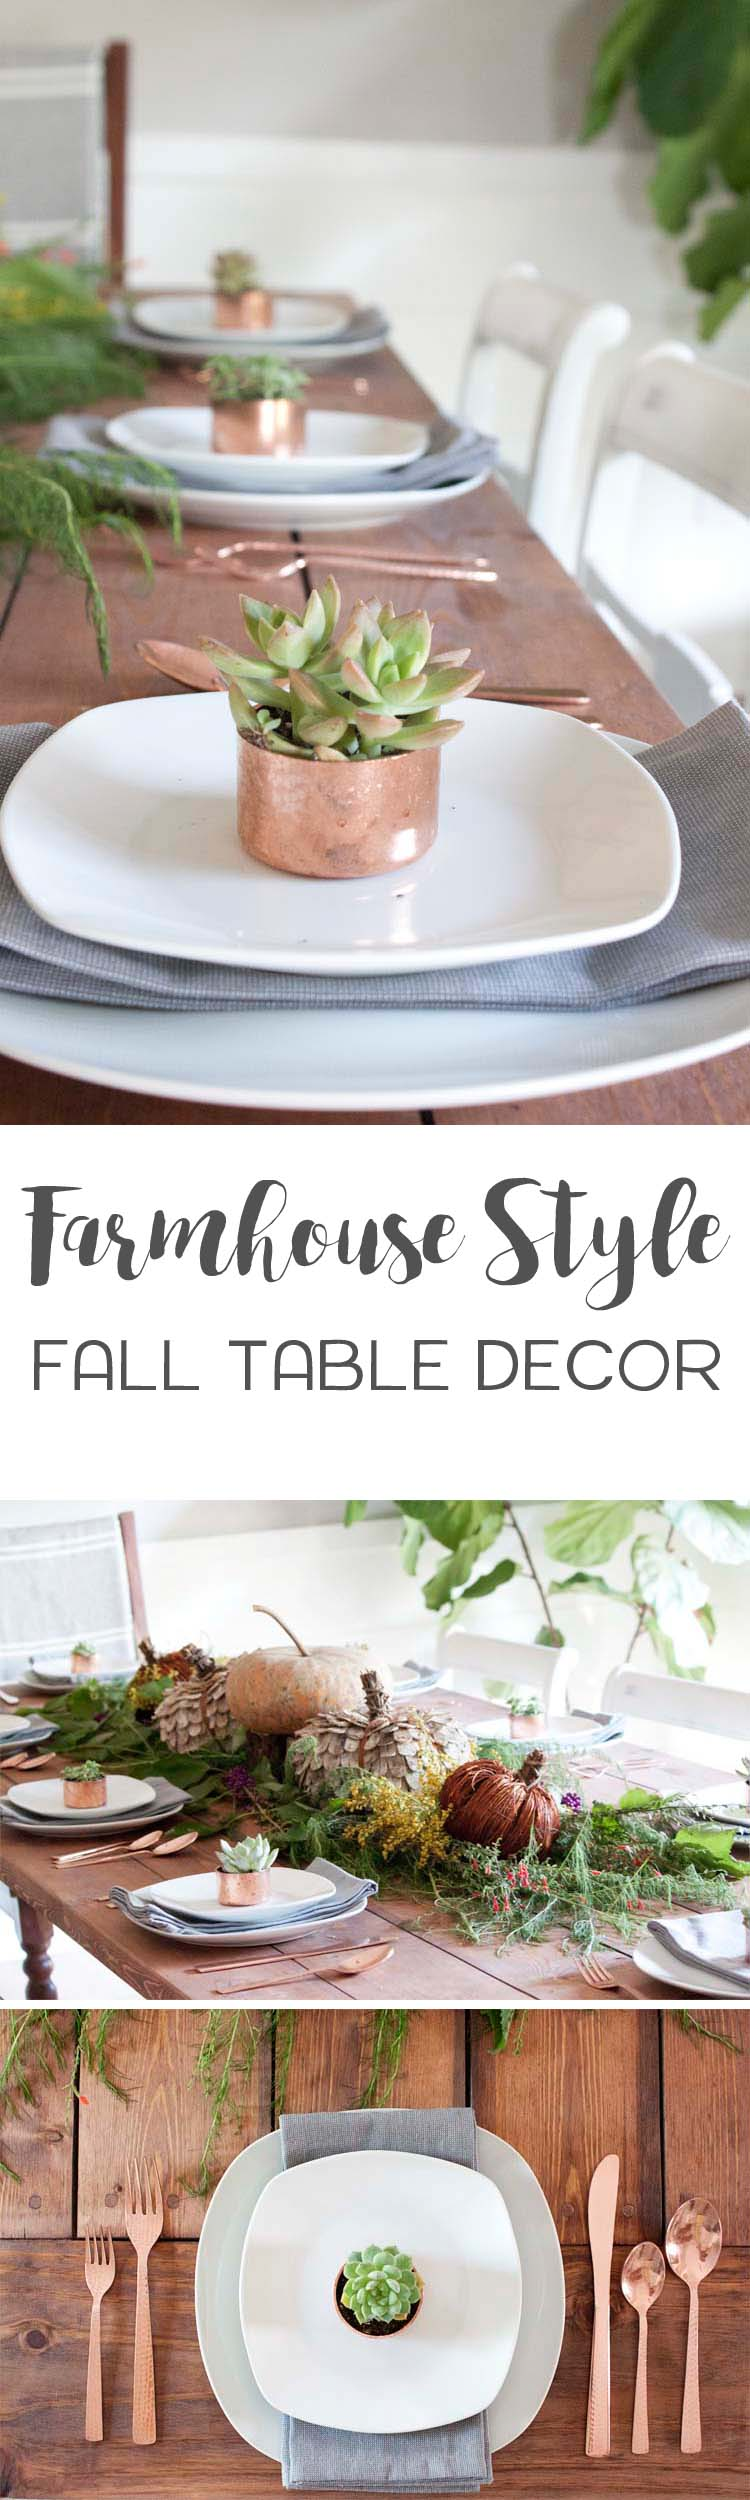 farmhouse style fall table decor southern revivals accent rustic and natural touches mixed with warm copper accents make this setting round glass top silver drum side cabinet legs